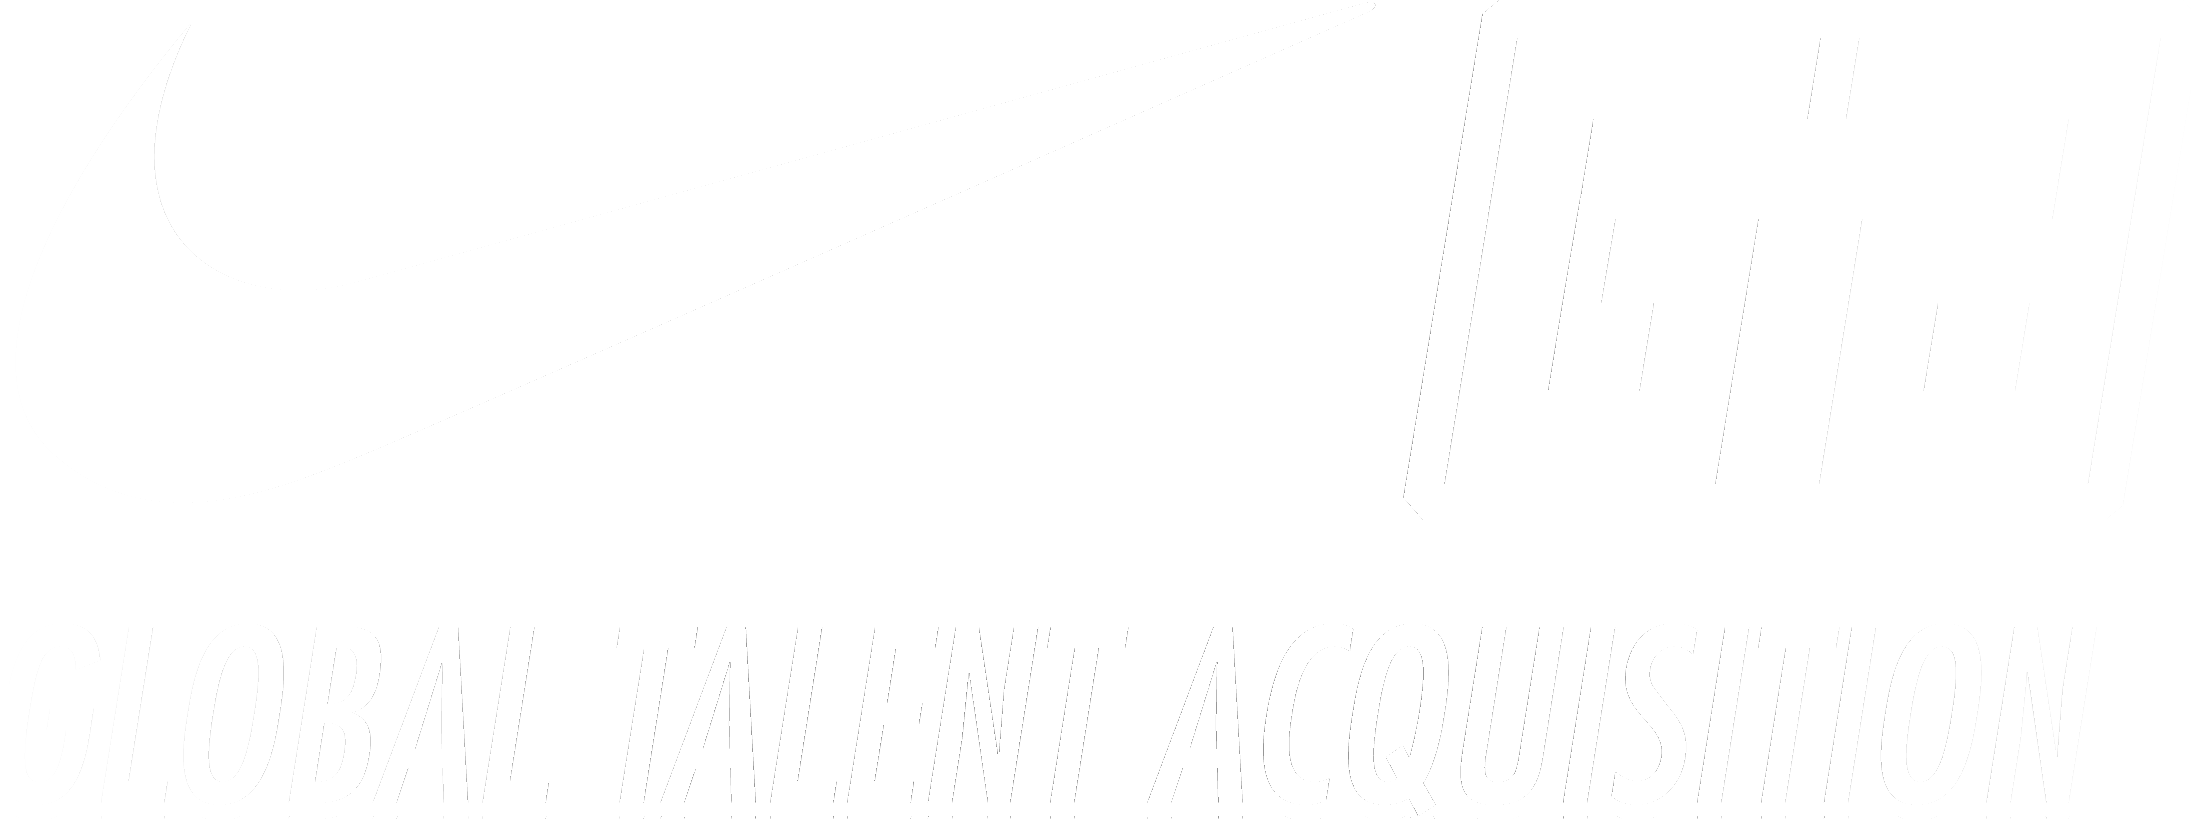 White Nike Logo Transparent Background Pictures to Pin on ...